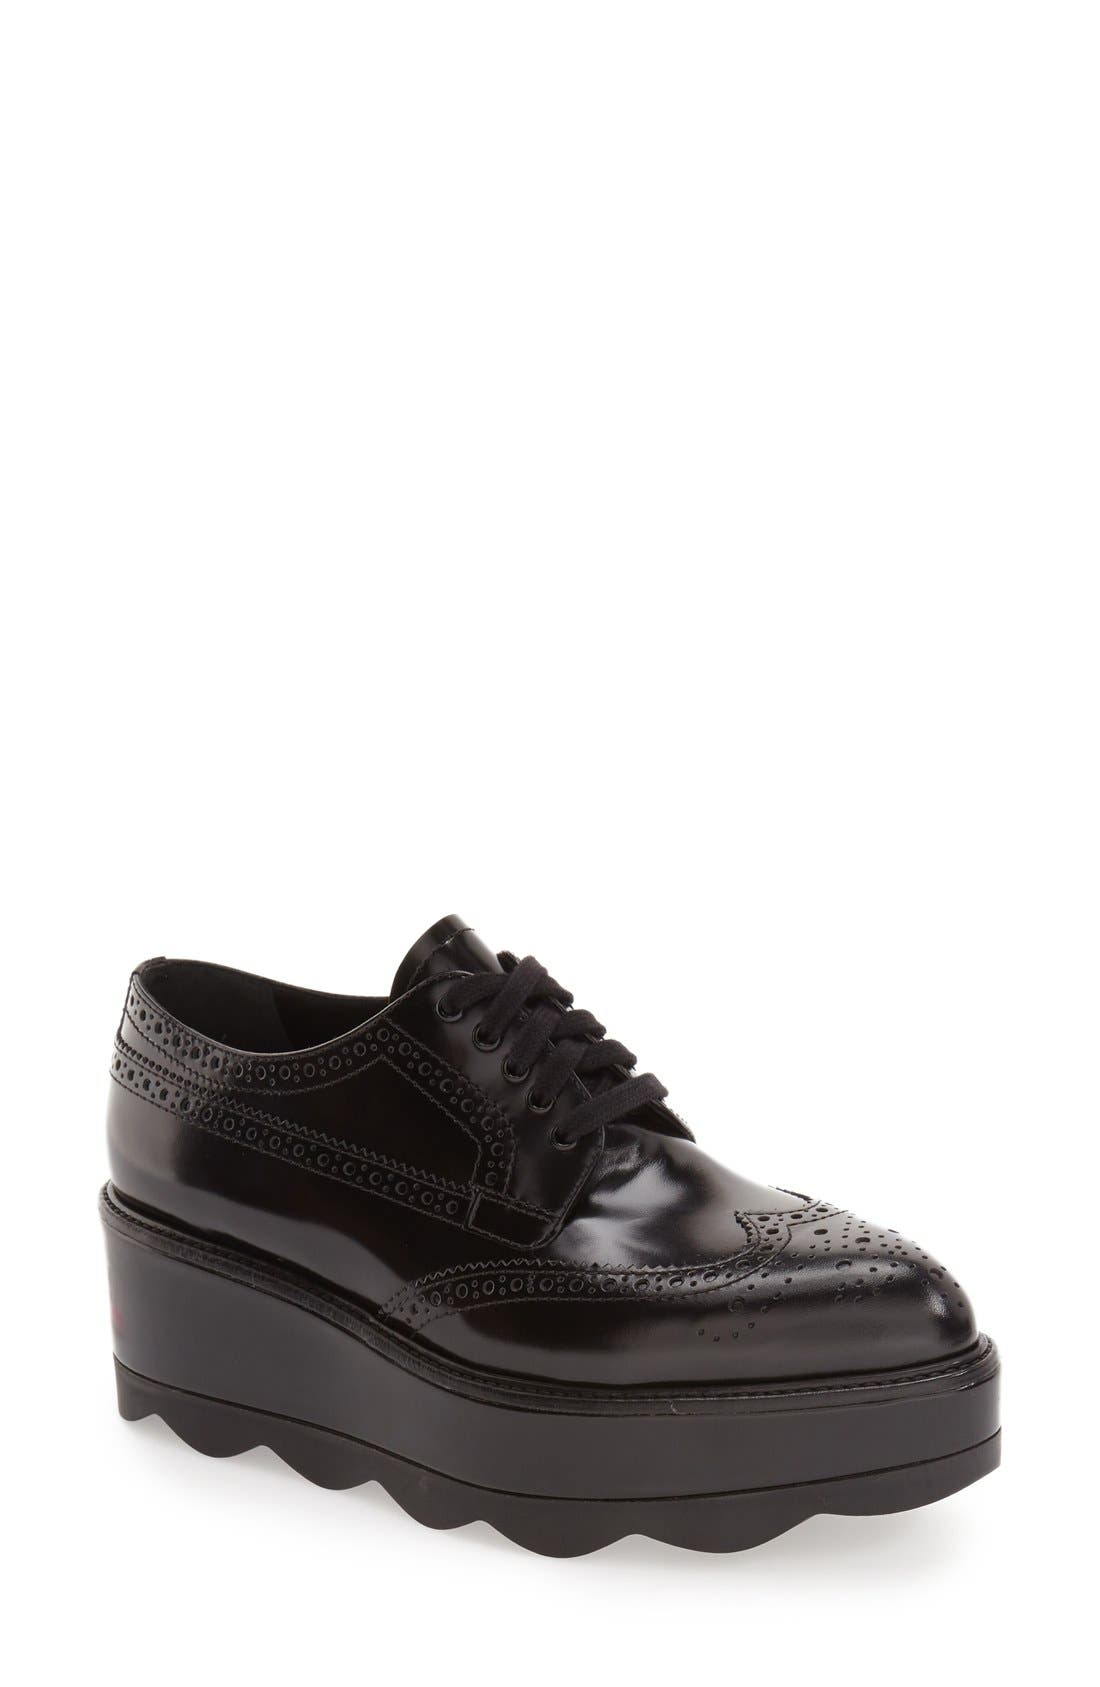 Scalloped Platform Oxford,                         Main,                         color, Black